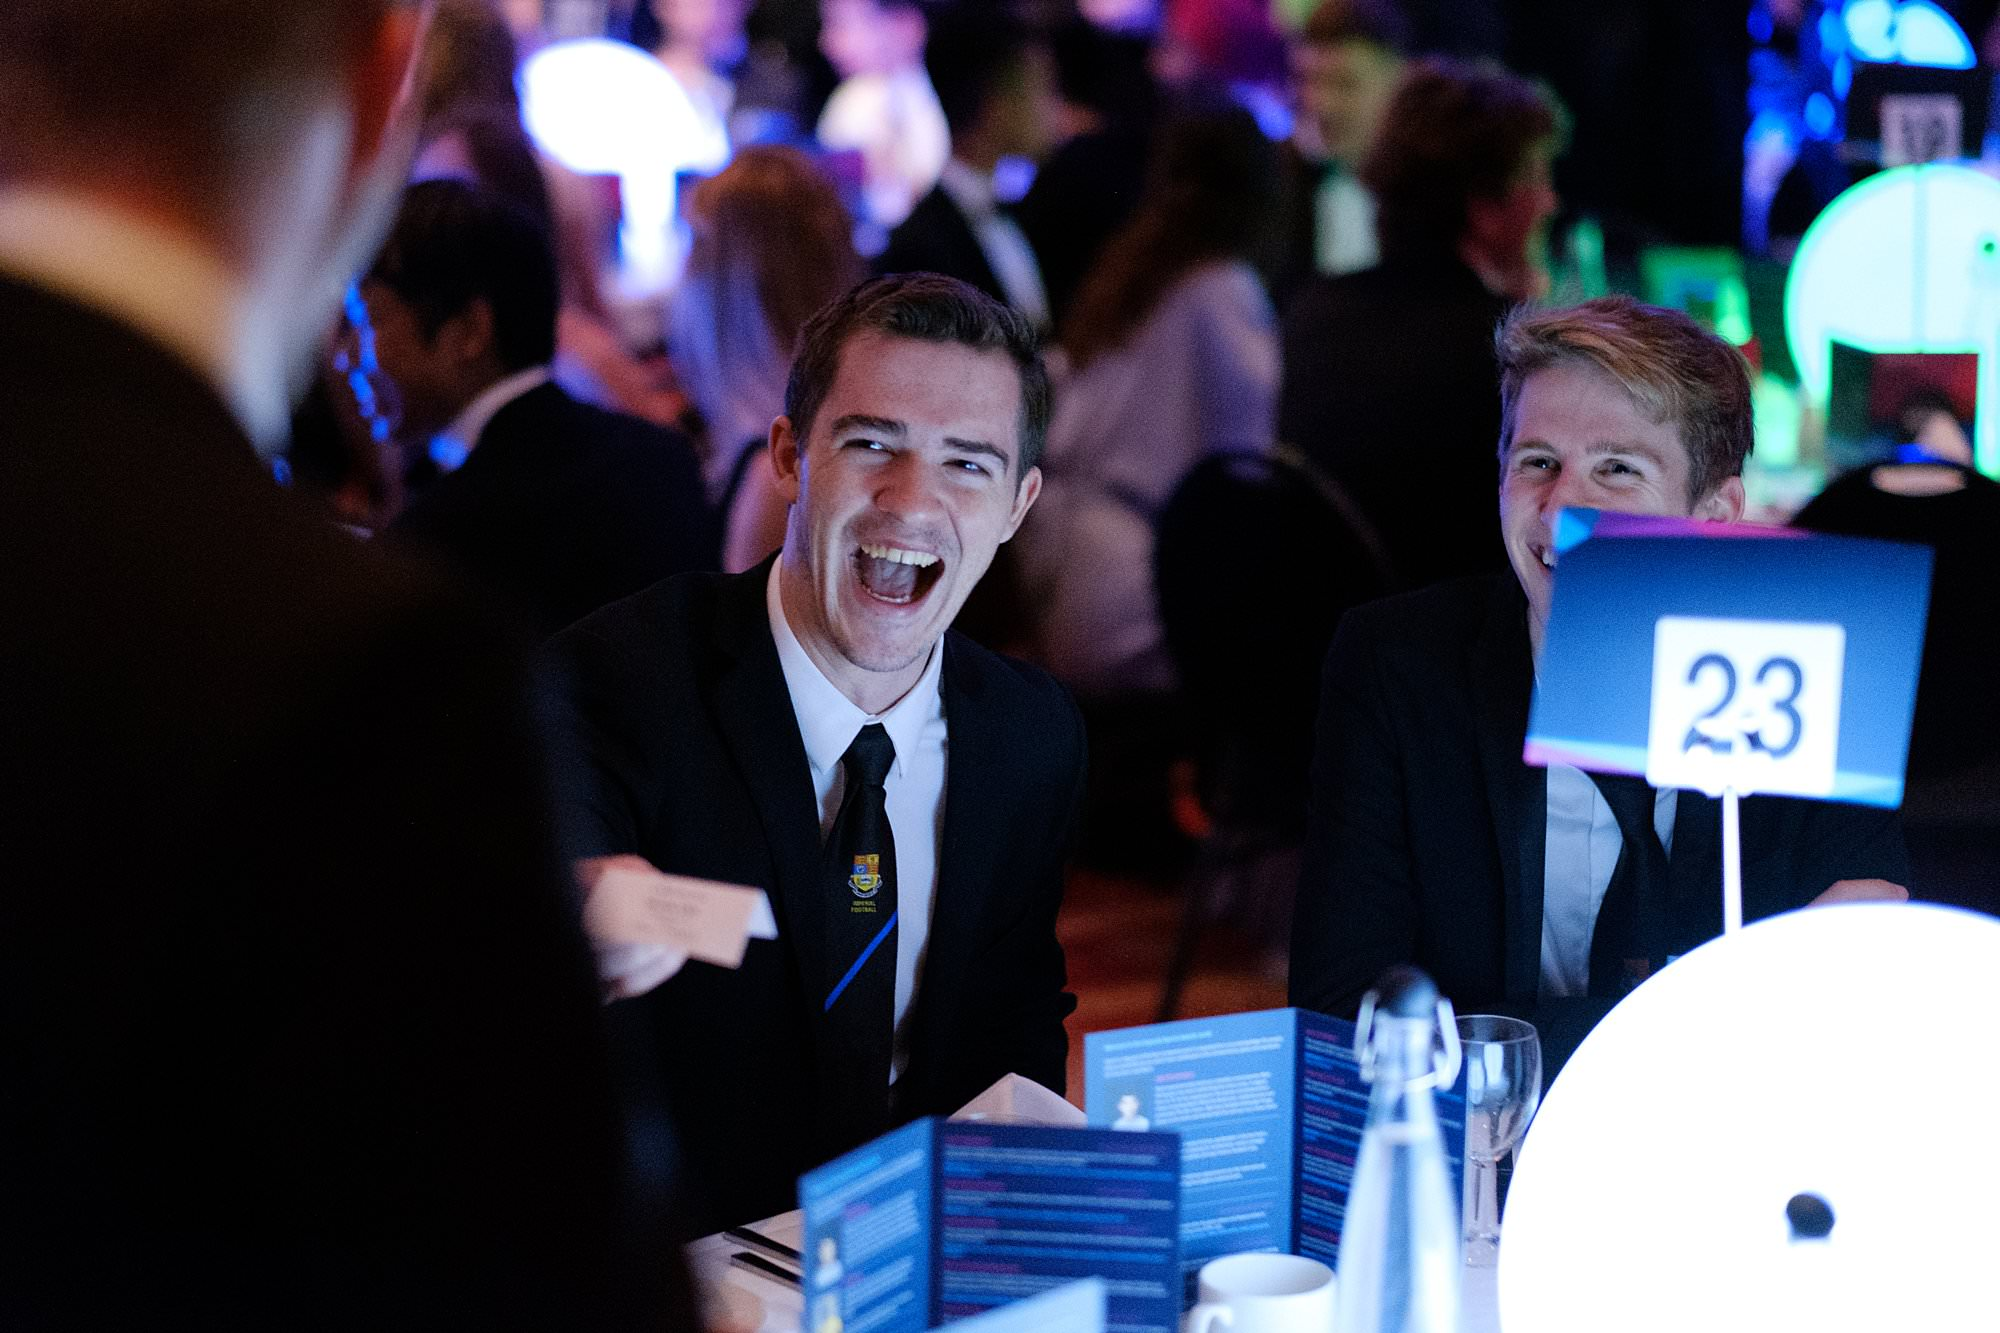 london event photographer ICL copthorne tara 011 - Corporate: Imperial College Sports Awards